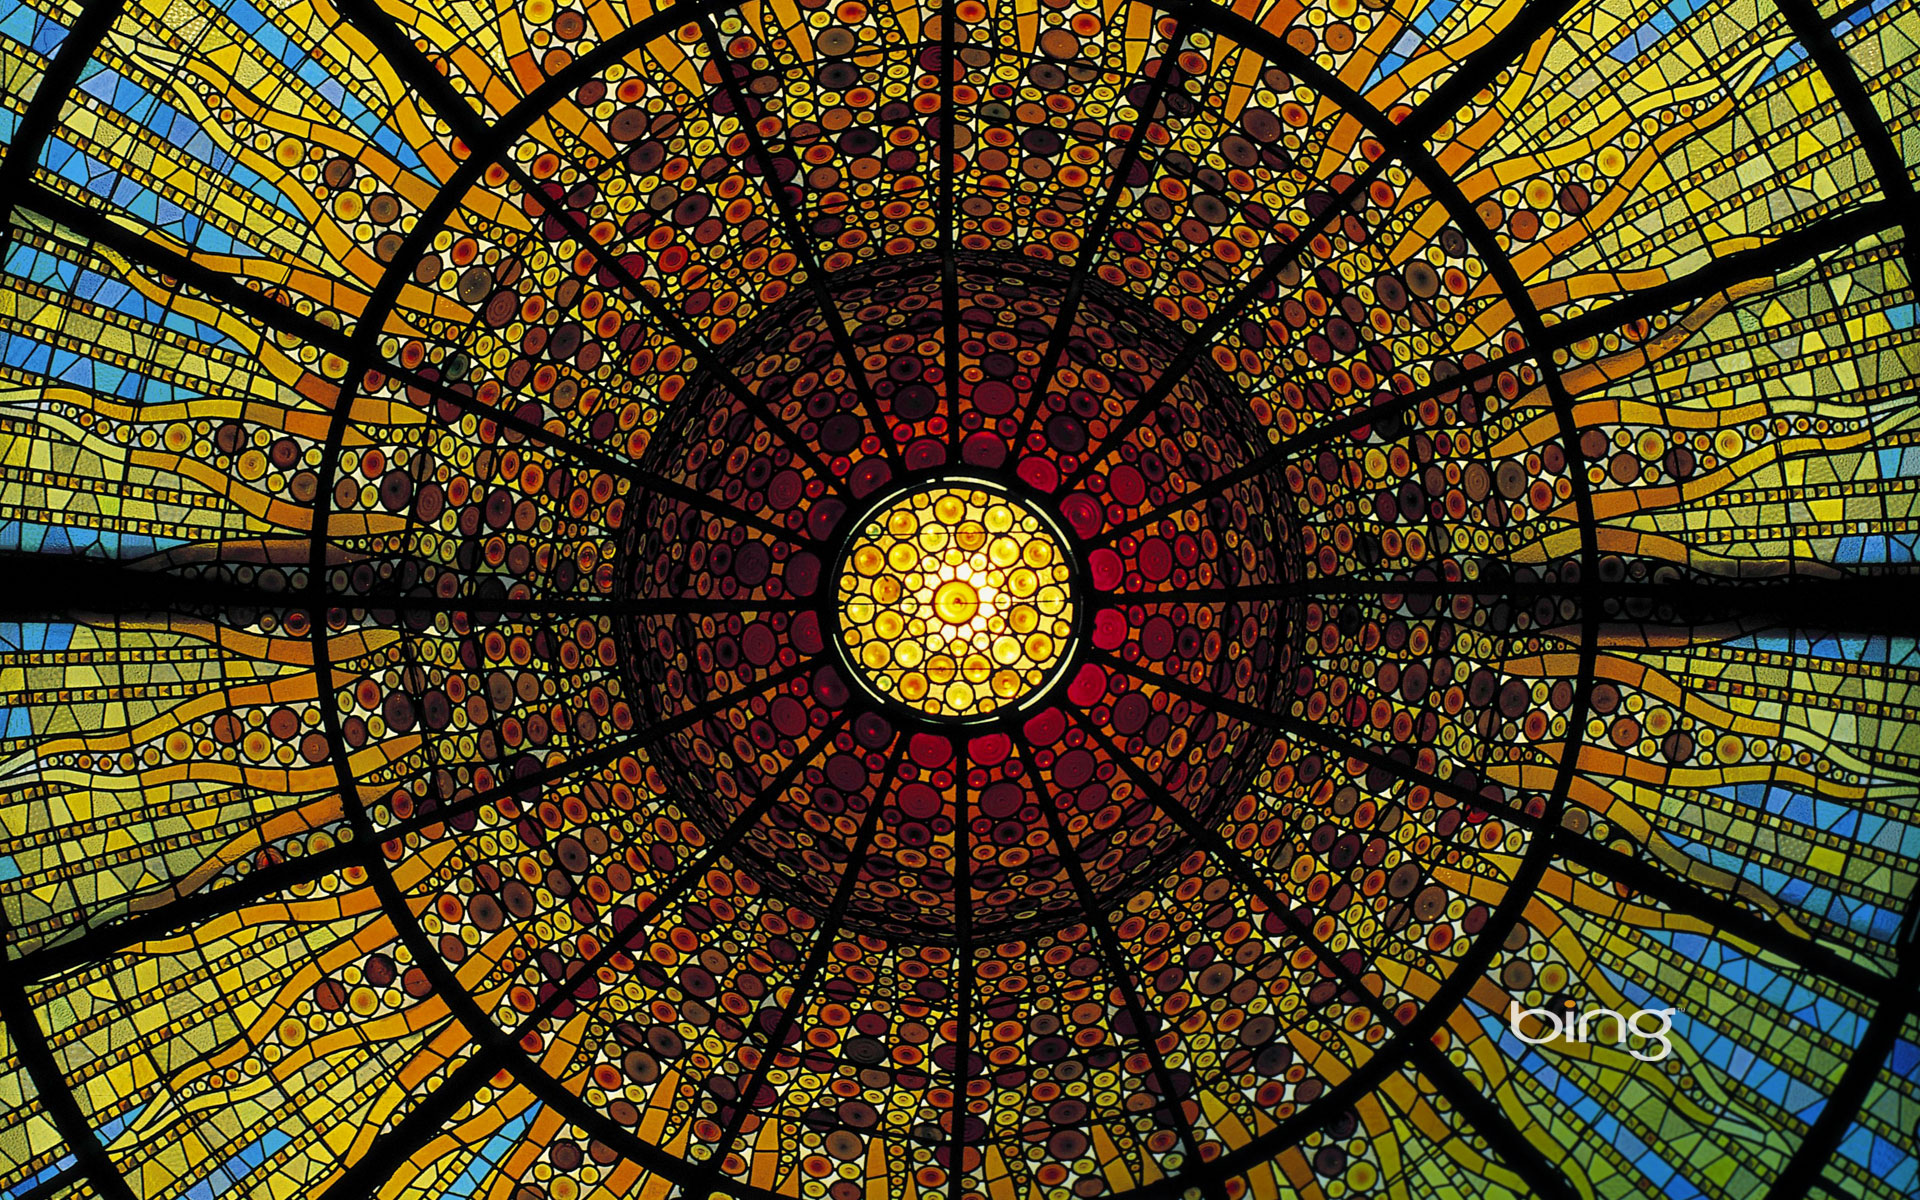 Stained-glass ceiling of the Palau de la Musica Catalana, Barcelona, Spain